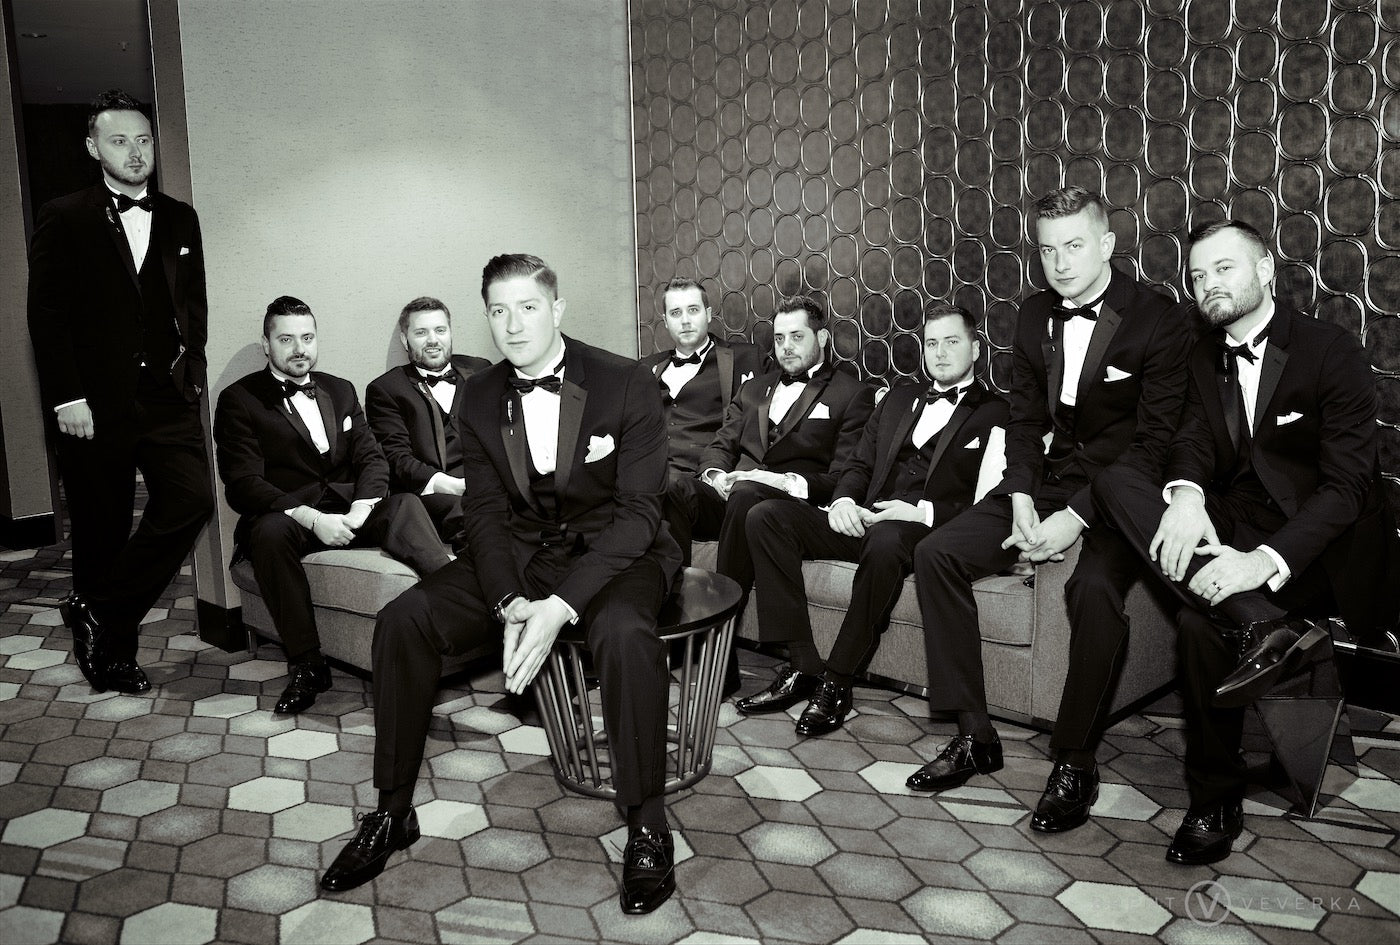 Groom and Groomsmen | Glam Speakeasy Wedding | Brent Veverka Media